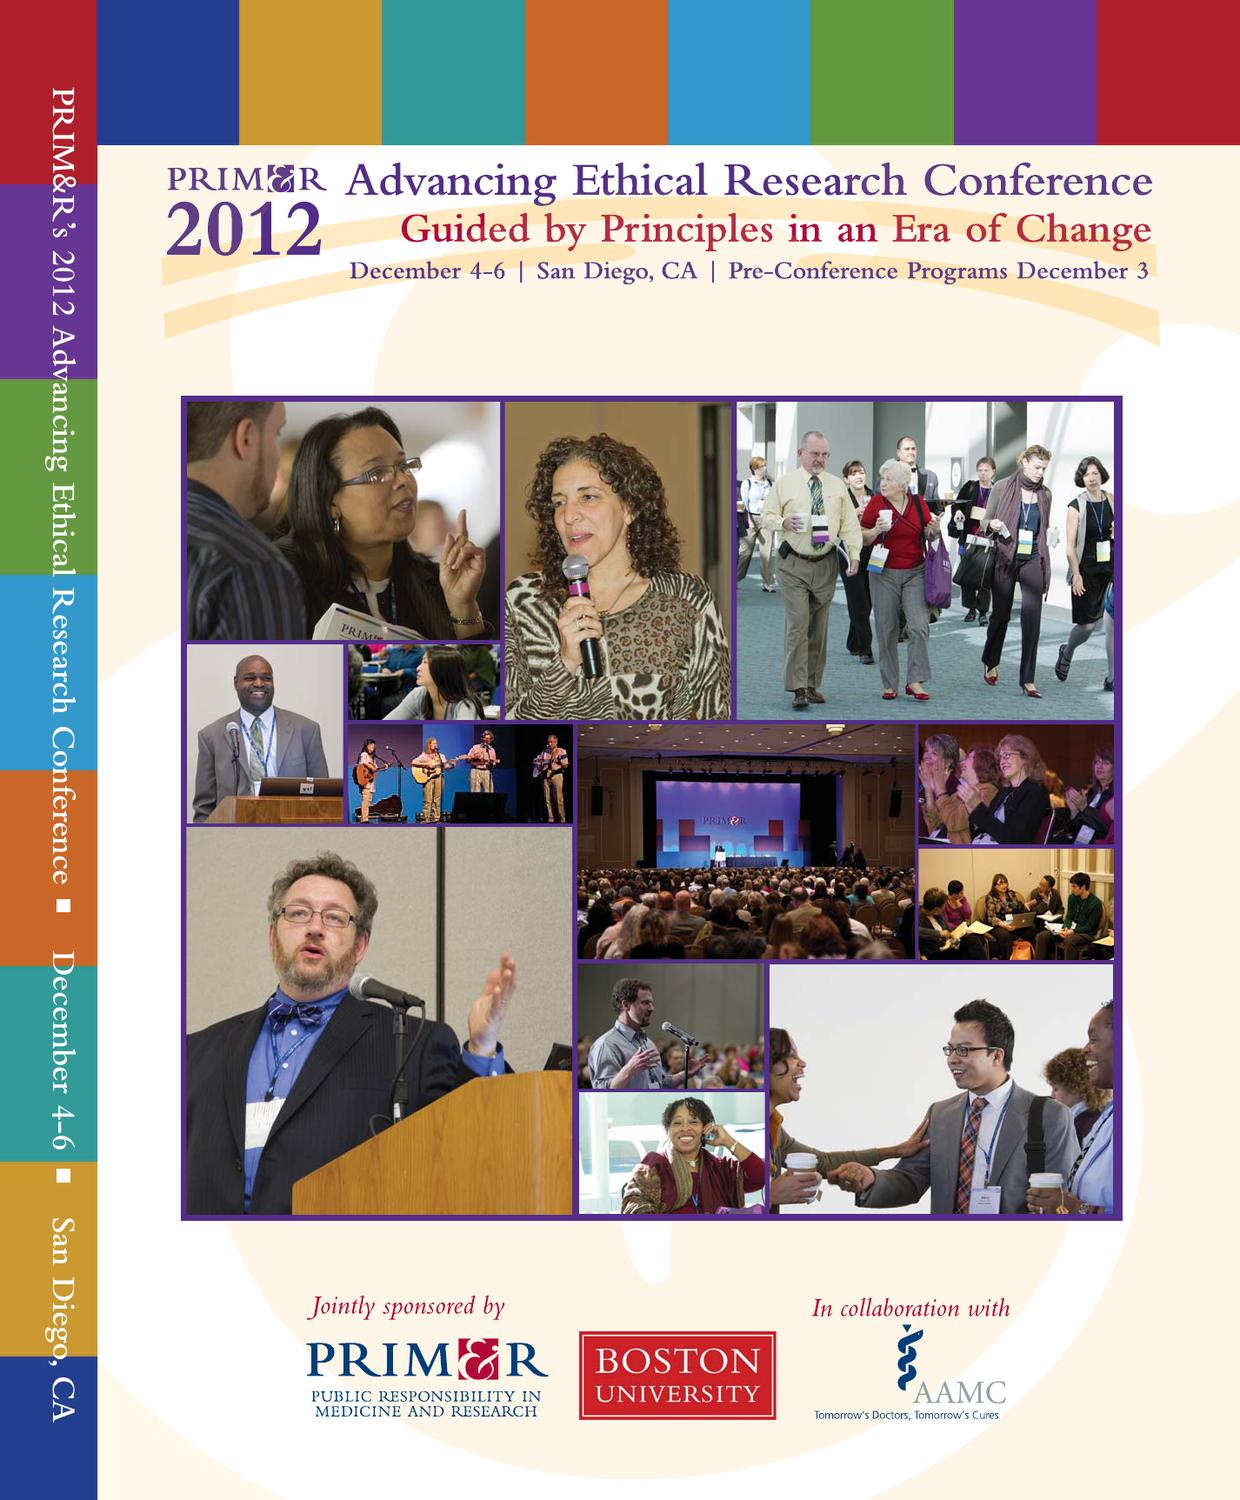 2012 Advancing Ethical Research Conference Guide